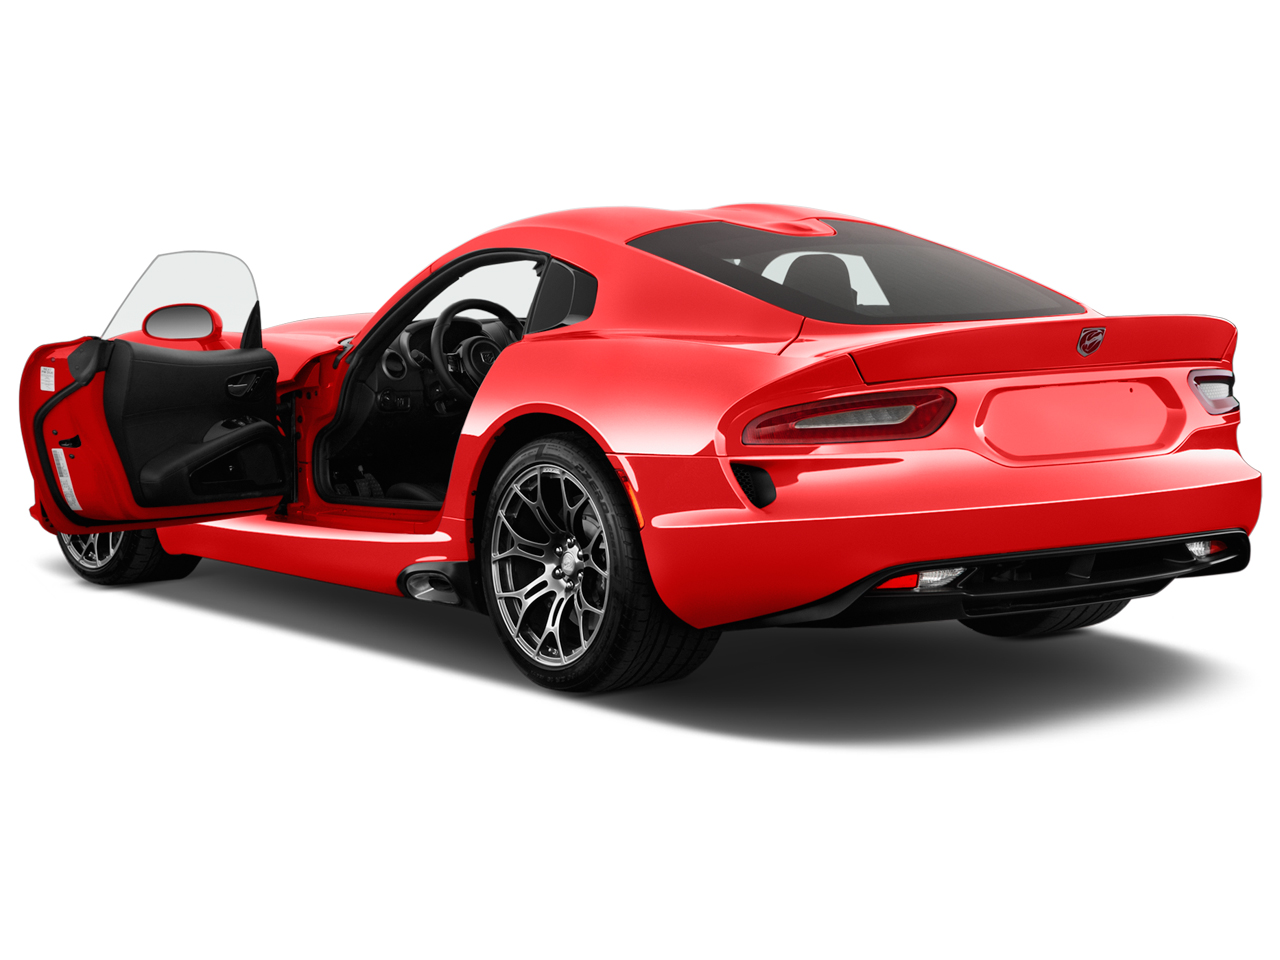 Dodge Viper 2018 8 4l Gts In Saudi Arabia New Car Prices